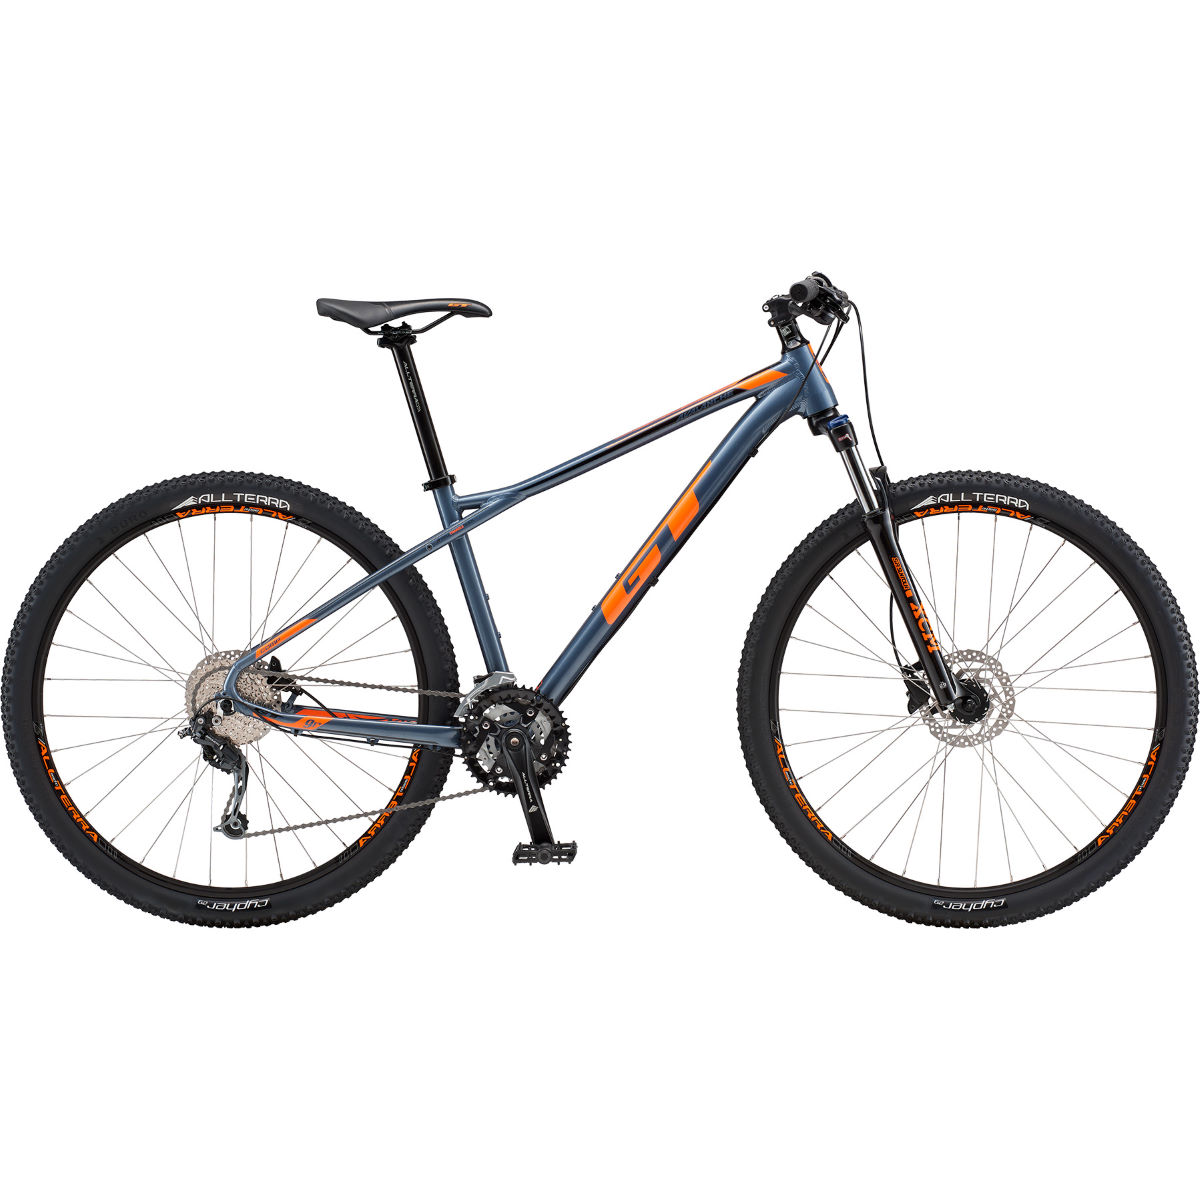 VTT semi-rigide GT Avalanche Comp 29 - Medium Stock Bike Blue Steel